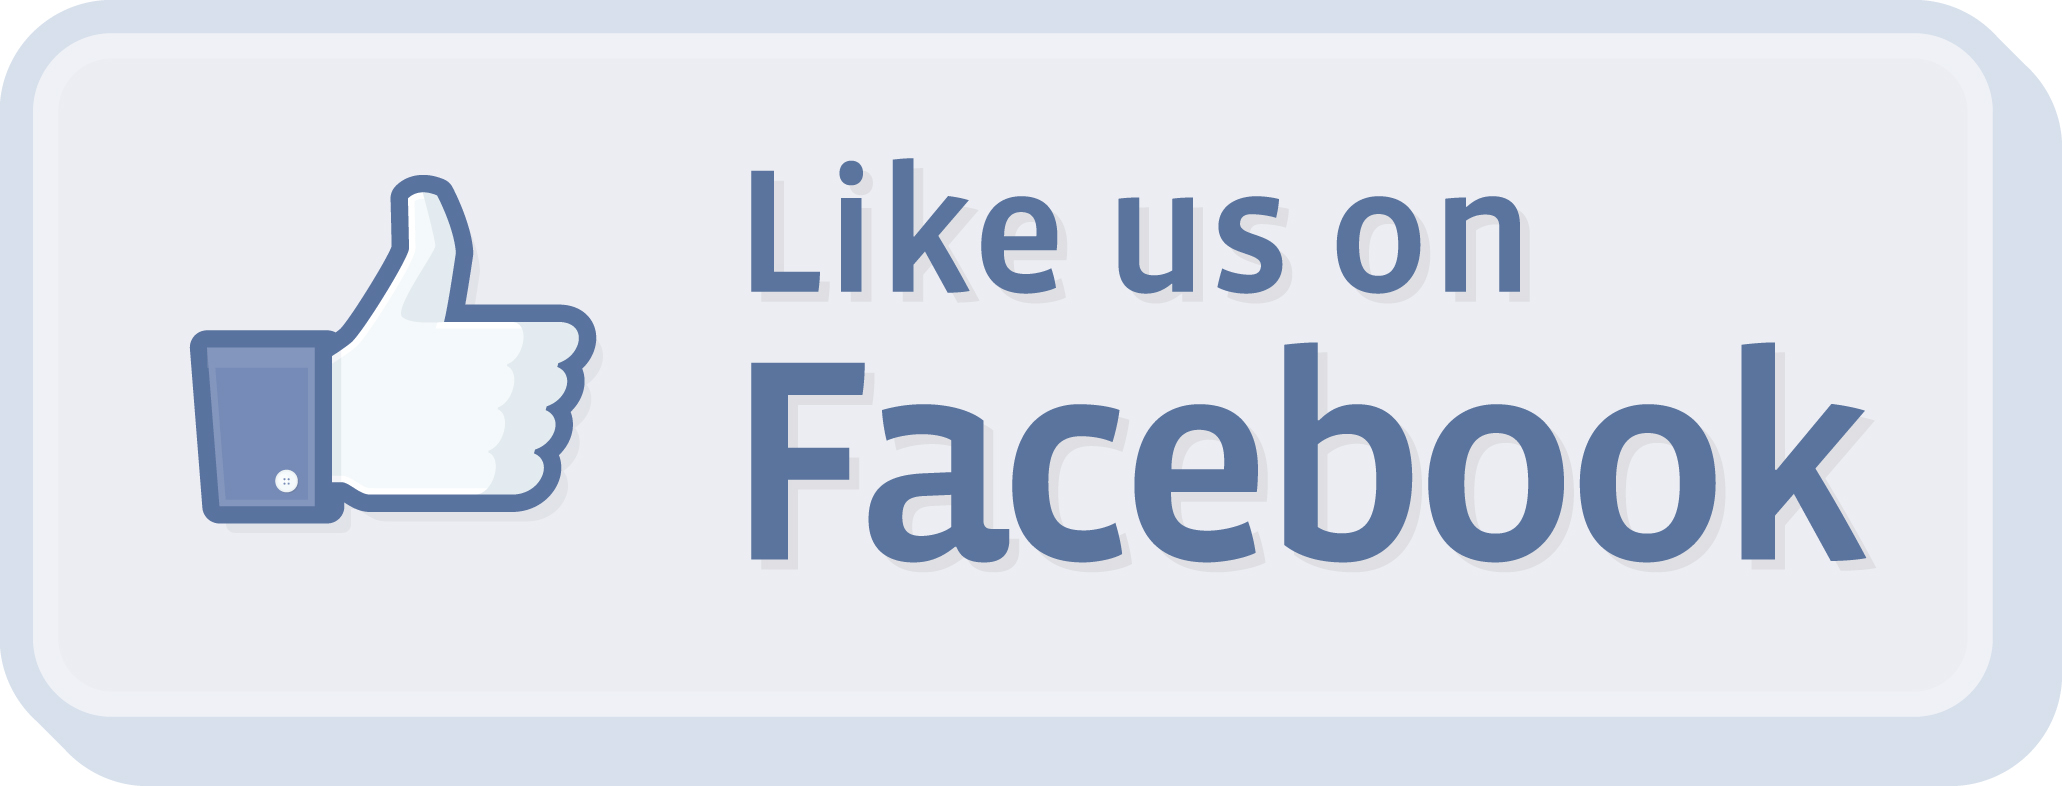 like us of facebook